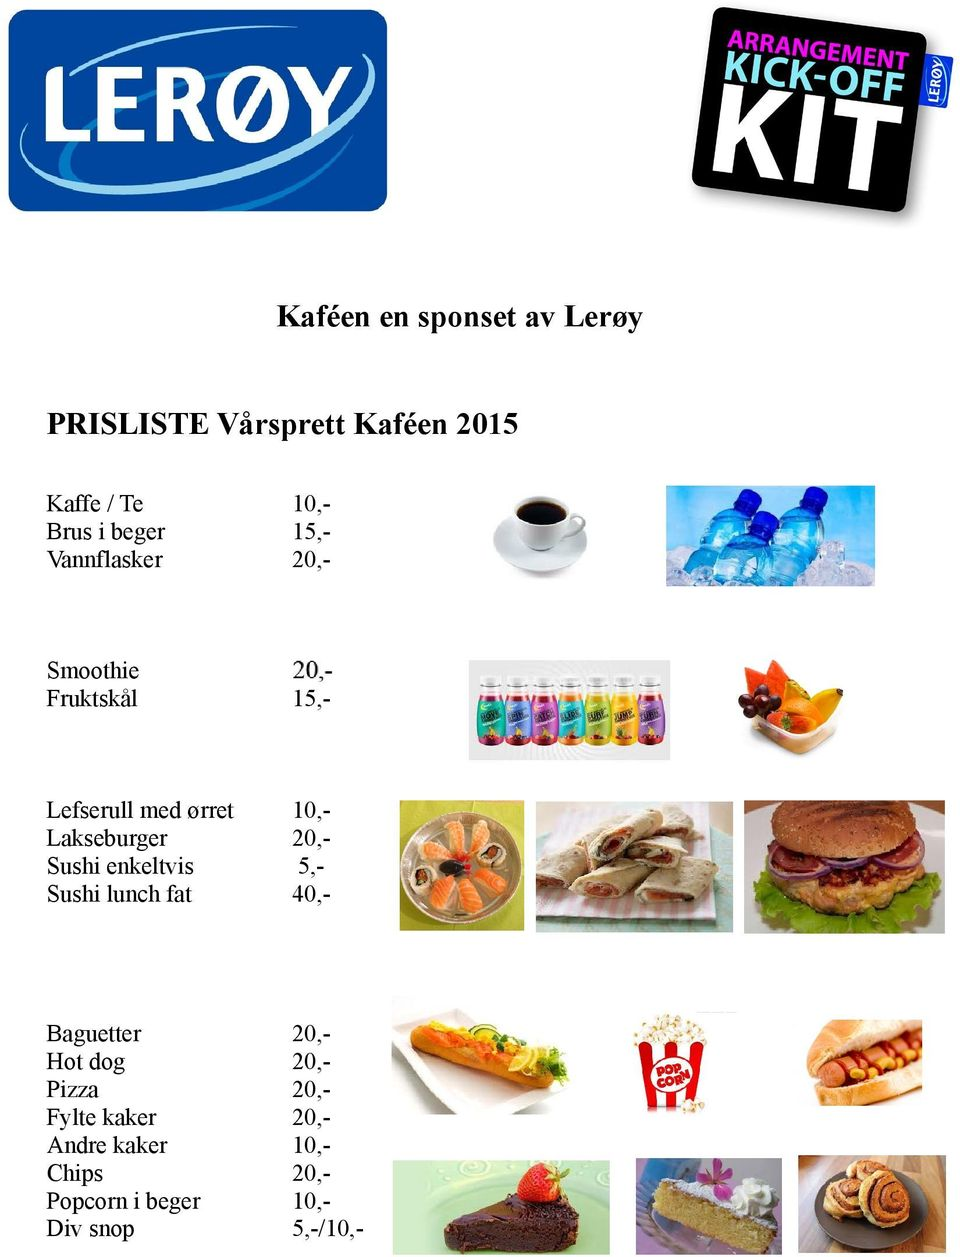 Lakseburger 20,- Sushi enkeltvis 5,- Sushi lunch fat 40,- Baguetter 20,- Hot dog 20,-